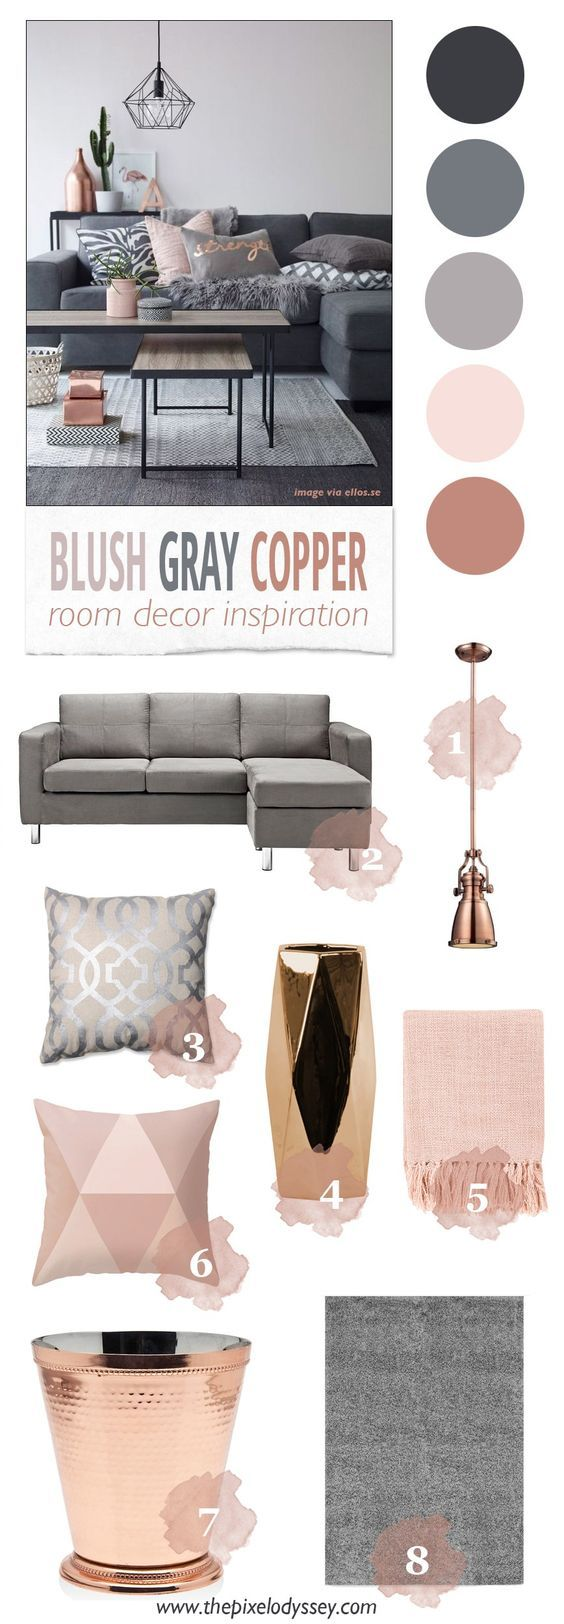 Blush Gray Copper Room Decor Inspiration! Visit our sister sites, OpenImageMedia.com for more color inspo and Rfmhstore.com for trendy…